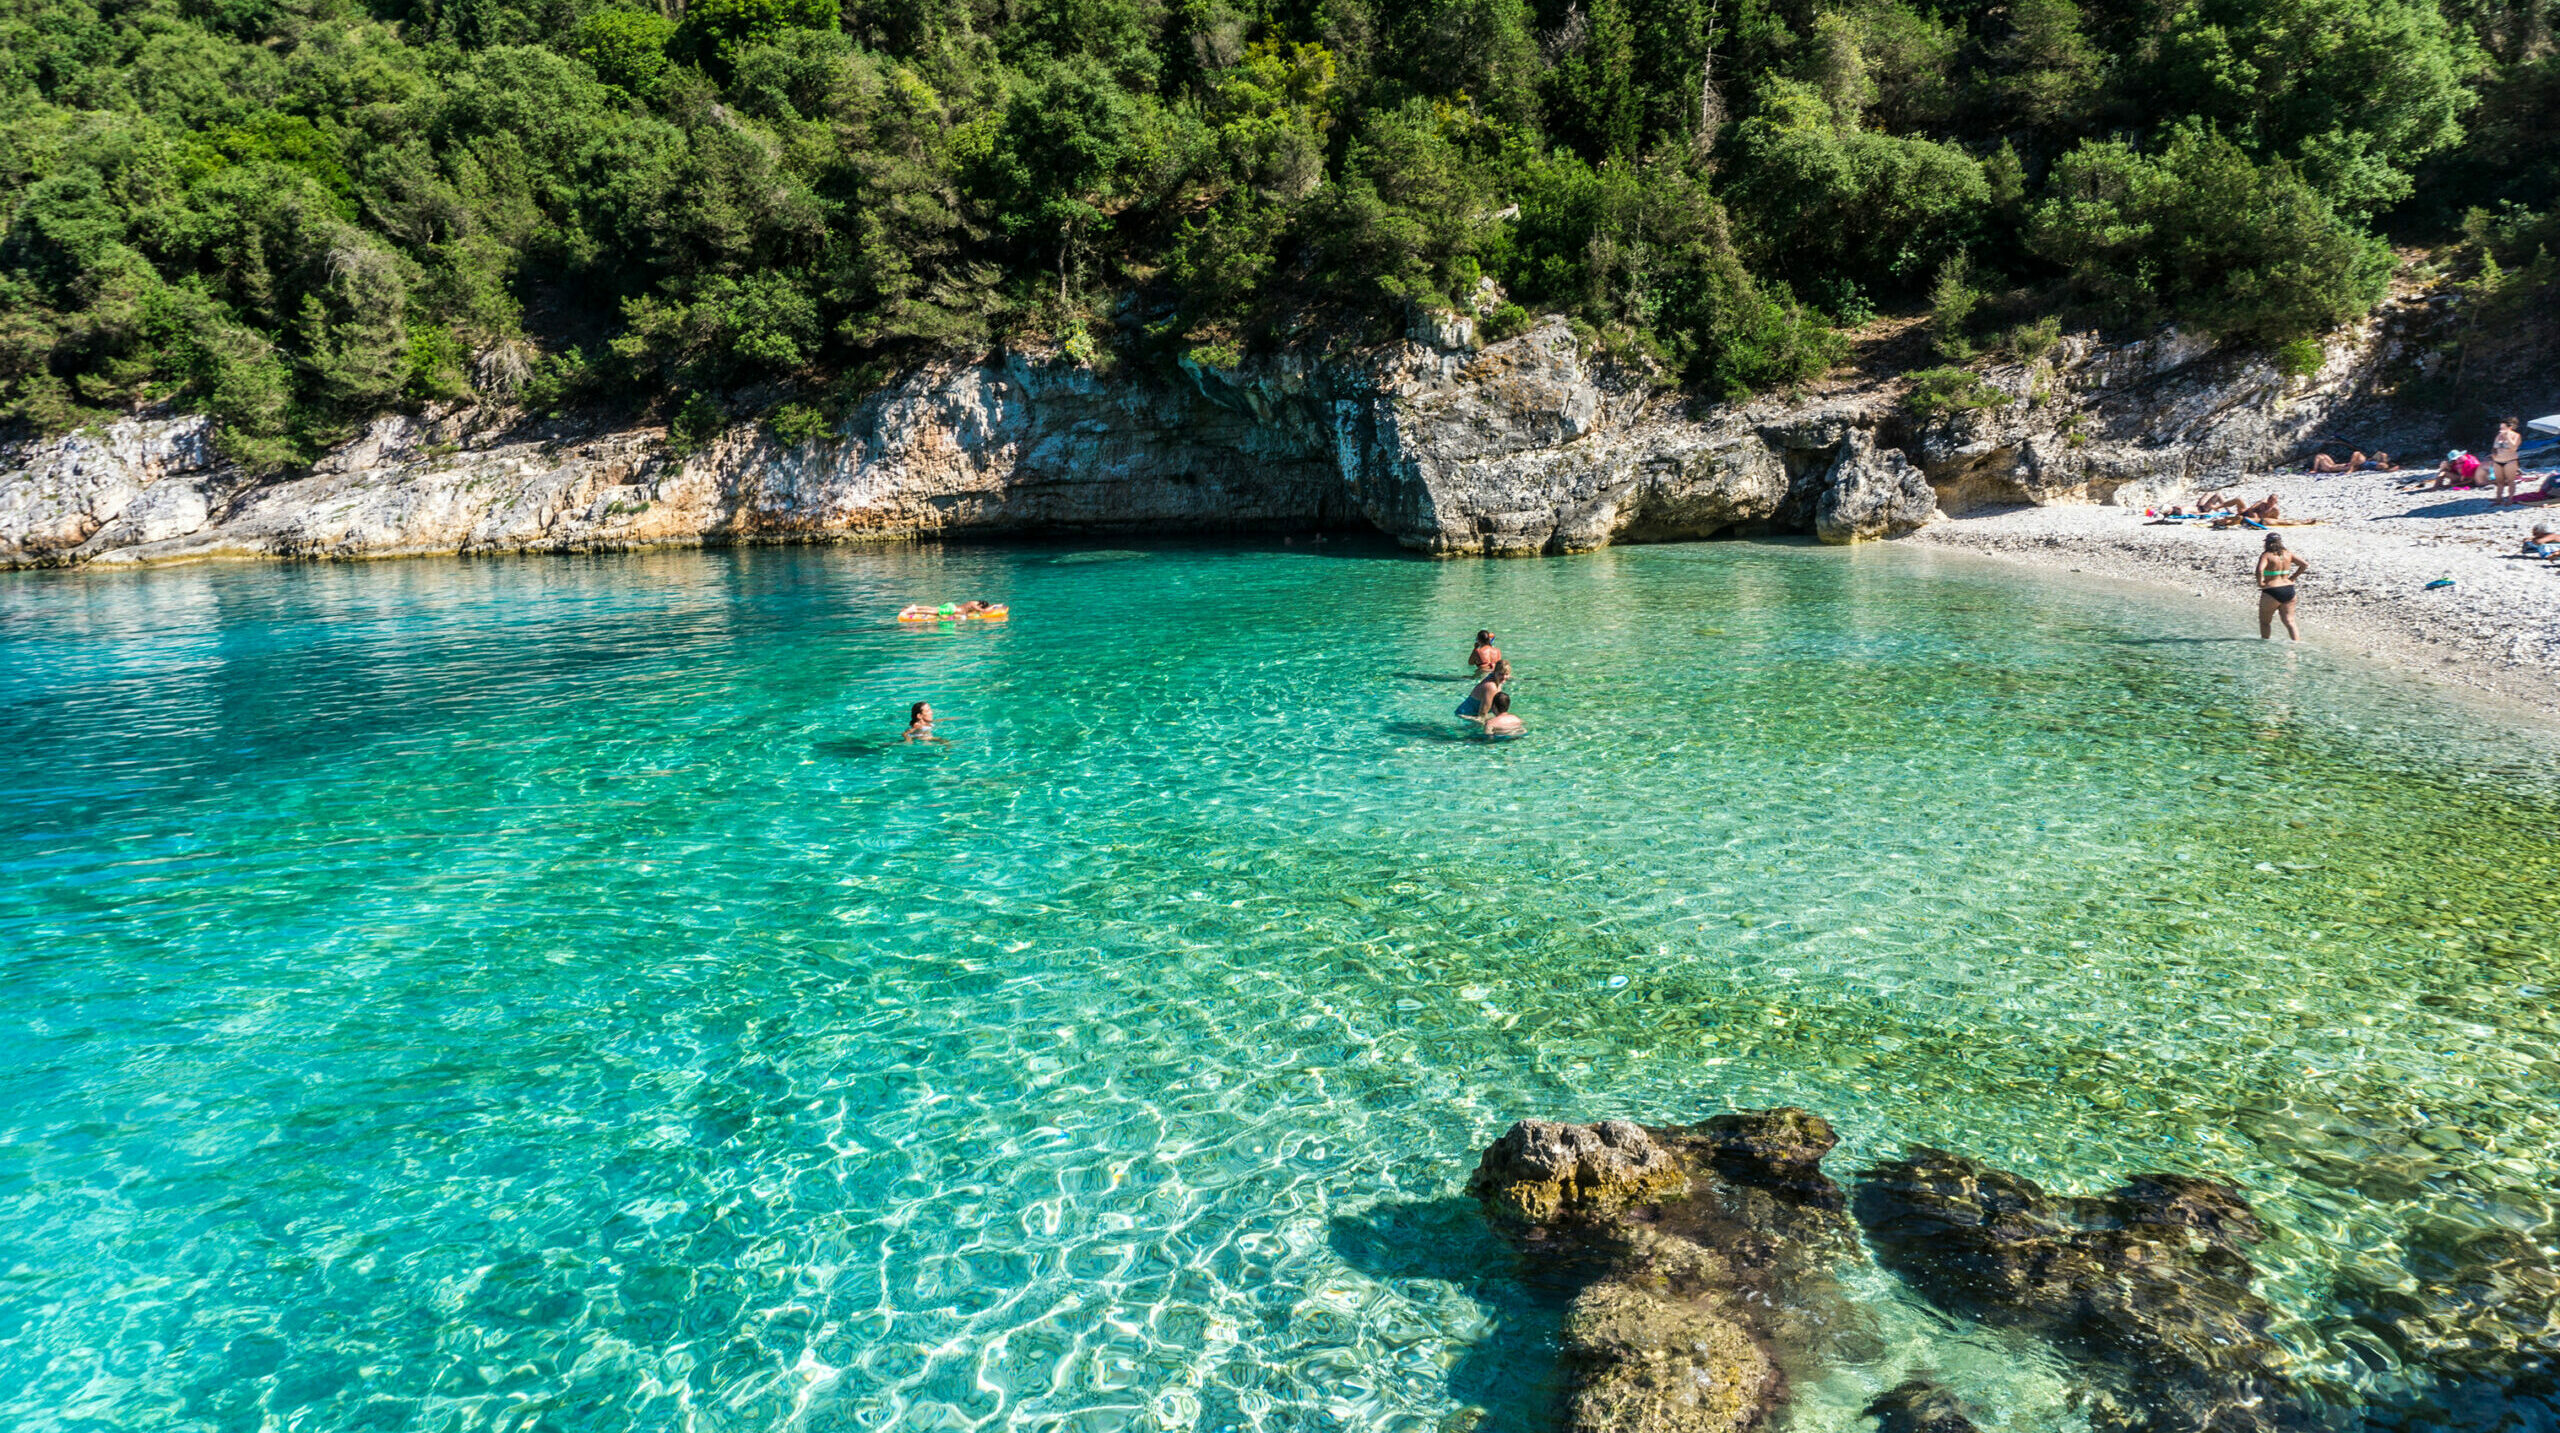 Dafnoudi in Kefalonia: The path that leads you to the magical beach